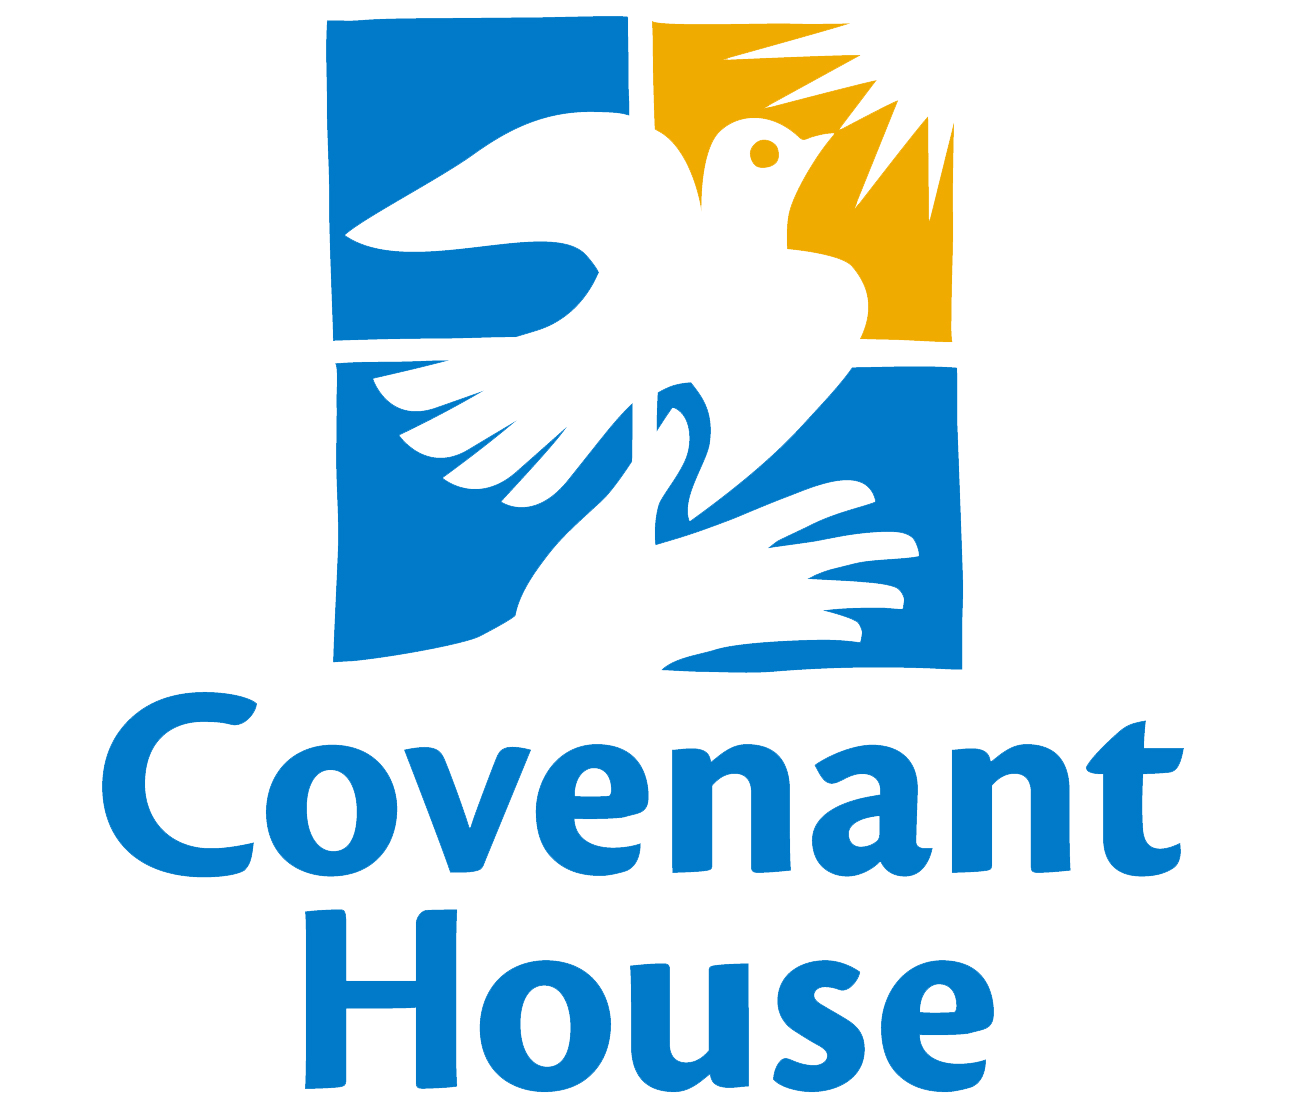 covenant-house-logo.png